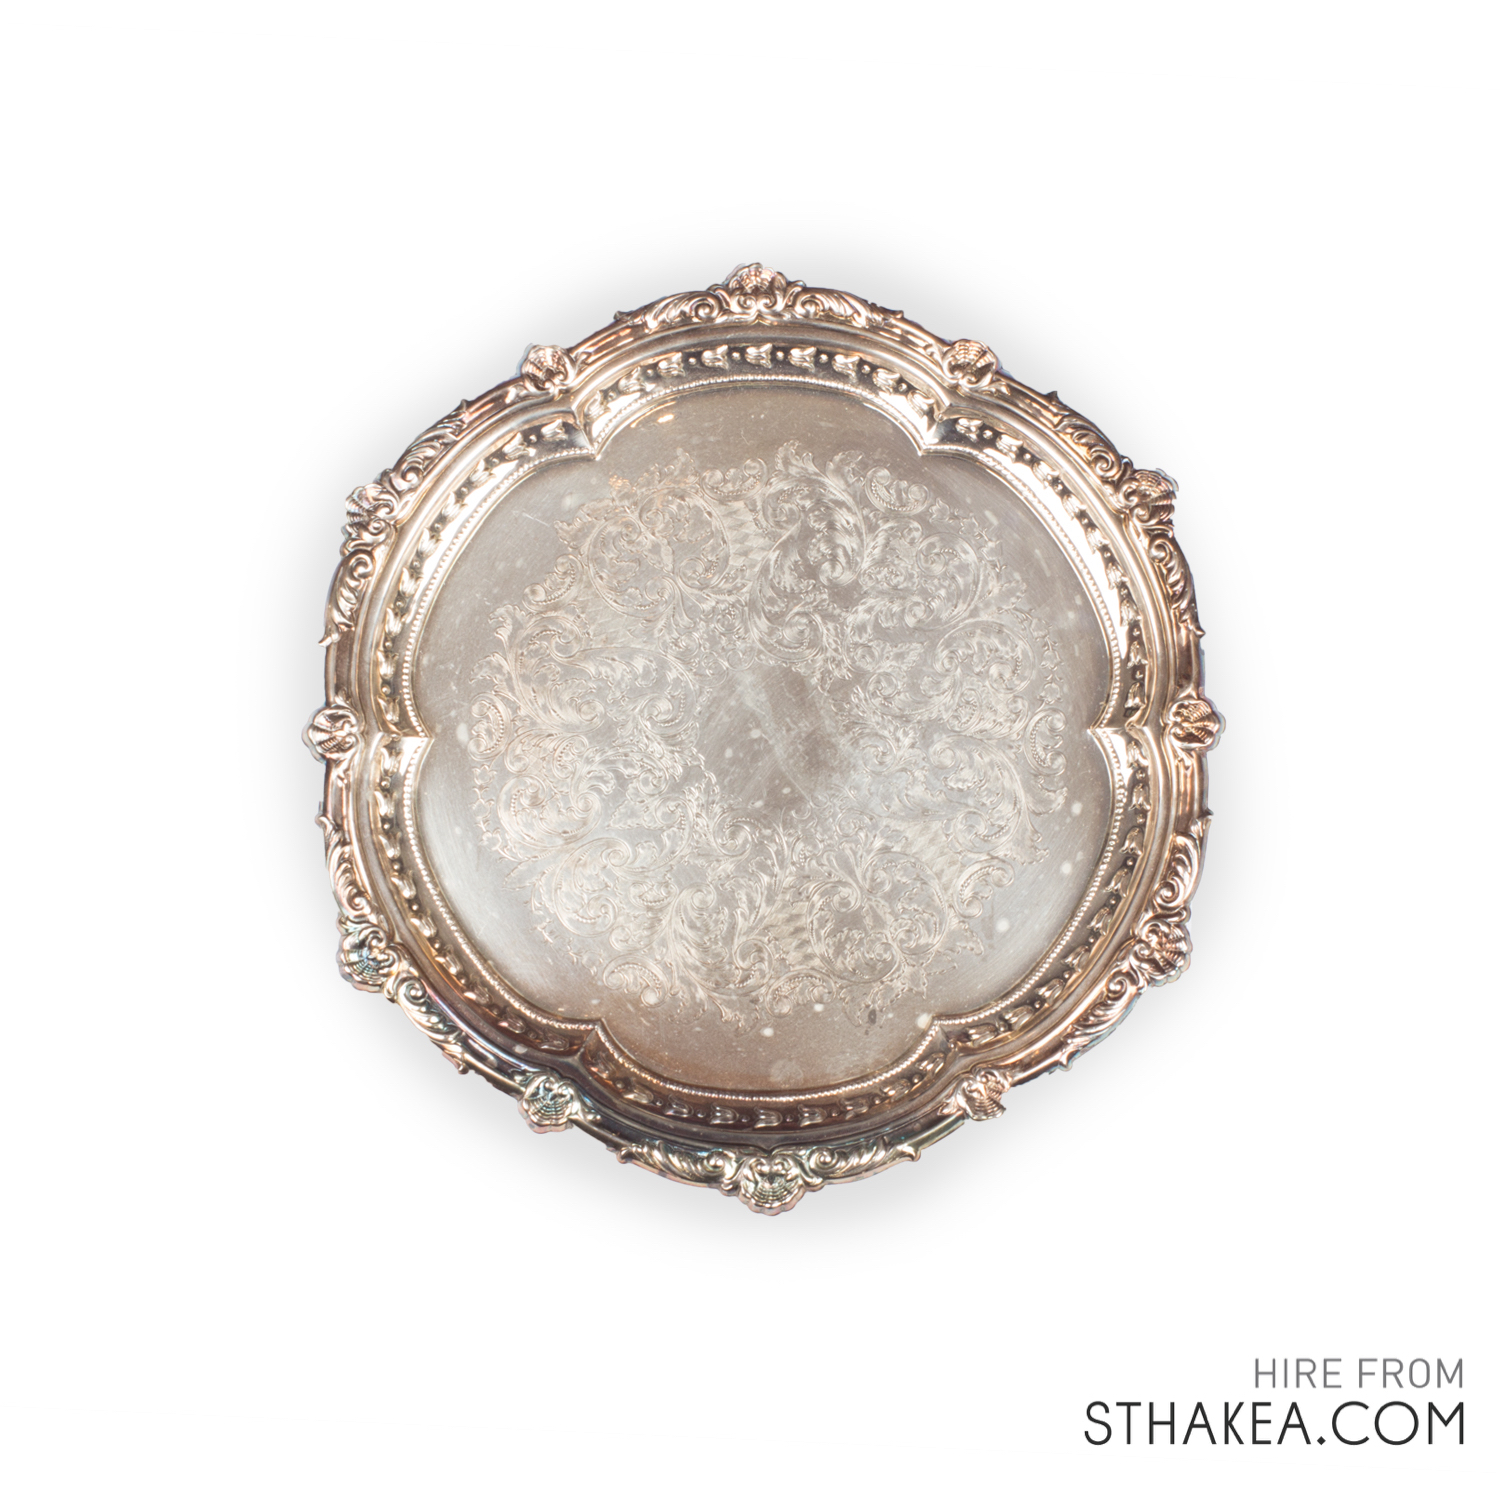 St Hakea Melbourne Event Hire Antique Silver Tray.jpg